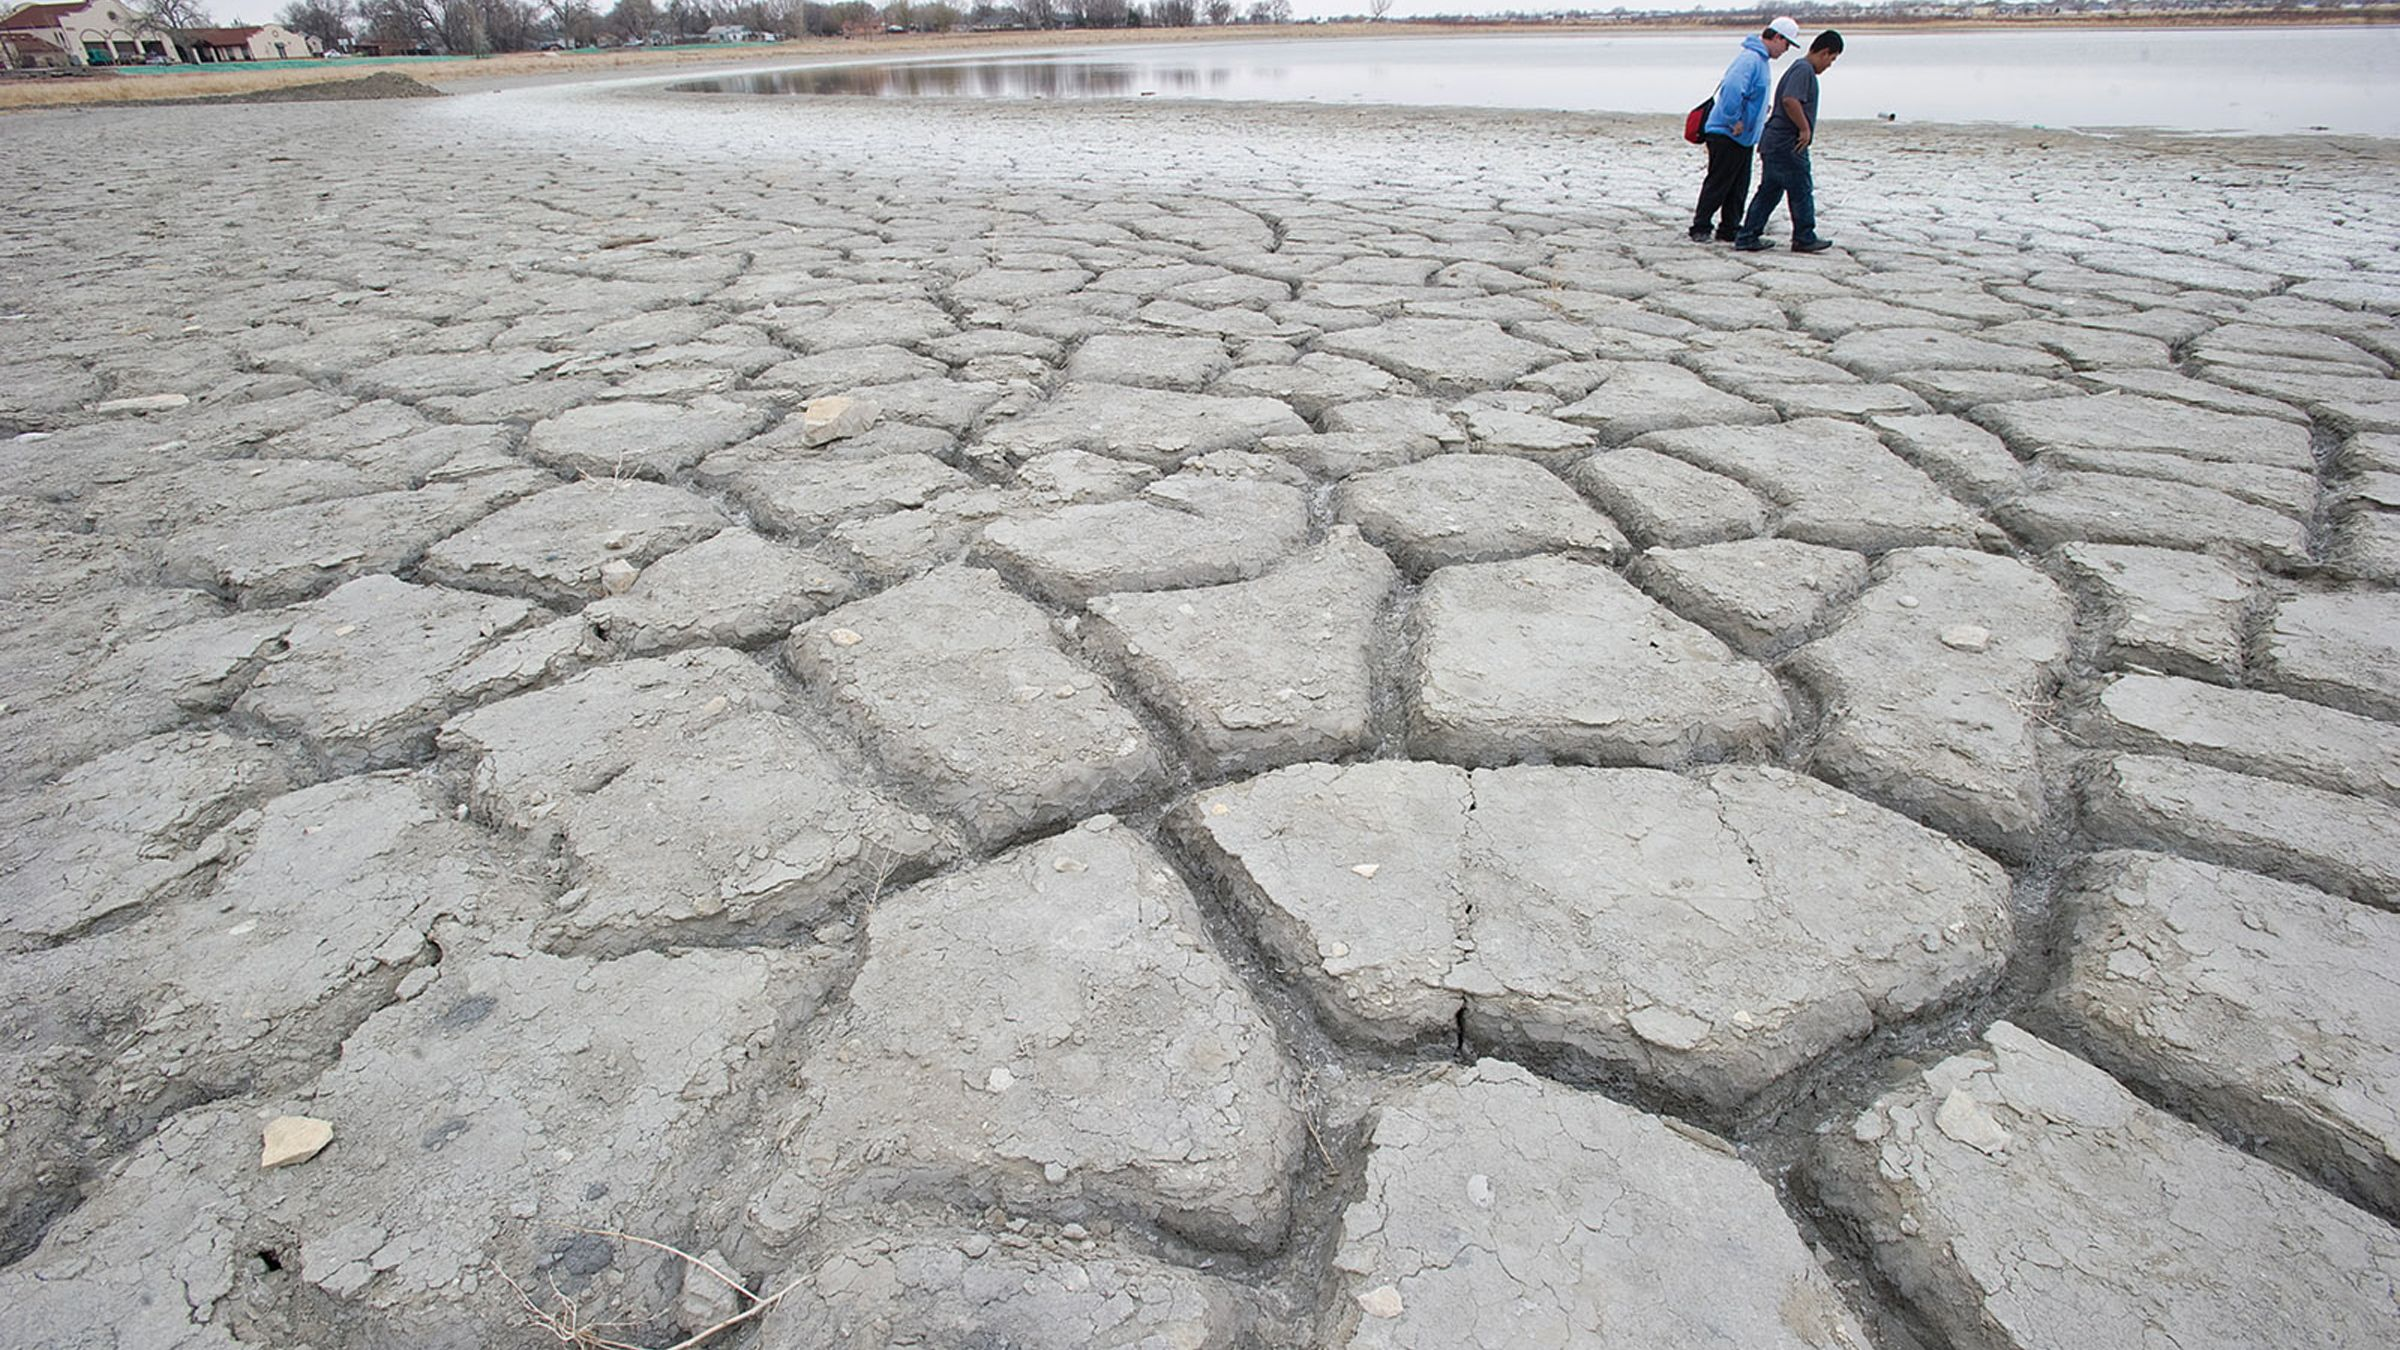 Davis Nixon (left) and Jose Ponce, both 12 years-old, look for fossils on the dry shores of Minnequa Lake in Pueblo, Colo. on April 2, 2013. Lake Minnequa will continue to shrink if the drought persists, even though a pipeline to bring fresh water into the lake is expected to be completed in June. (AP Photo,  John Jaques/Pueblo Chieftain)